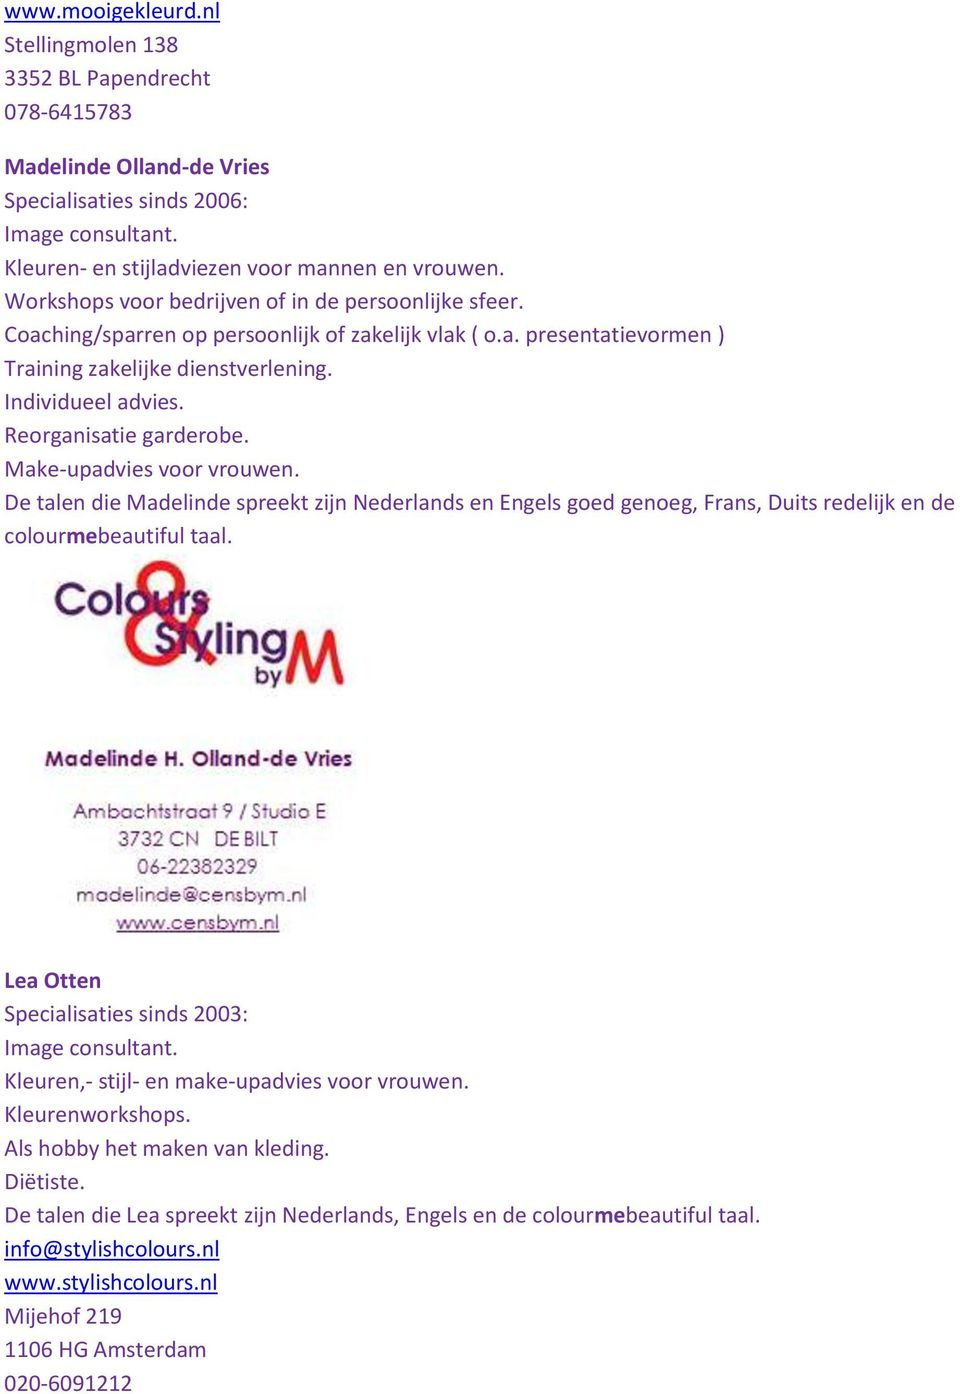 Garderobe In Engels.Adressen Van Gecertificeerde Colourmebeautiful Image Consultants In